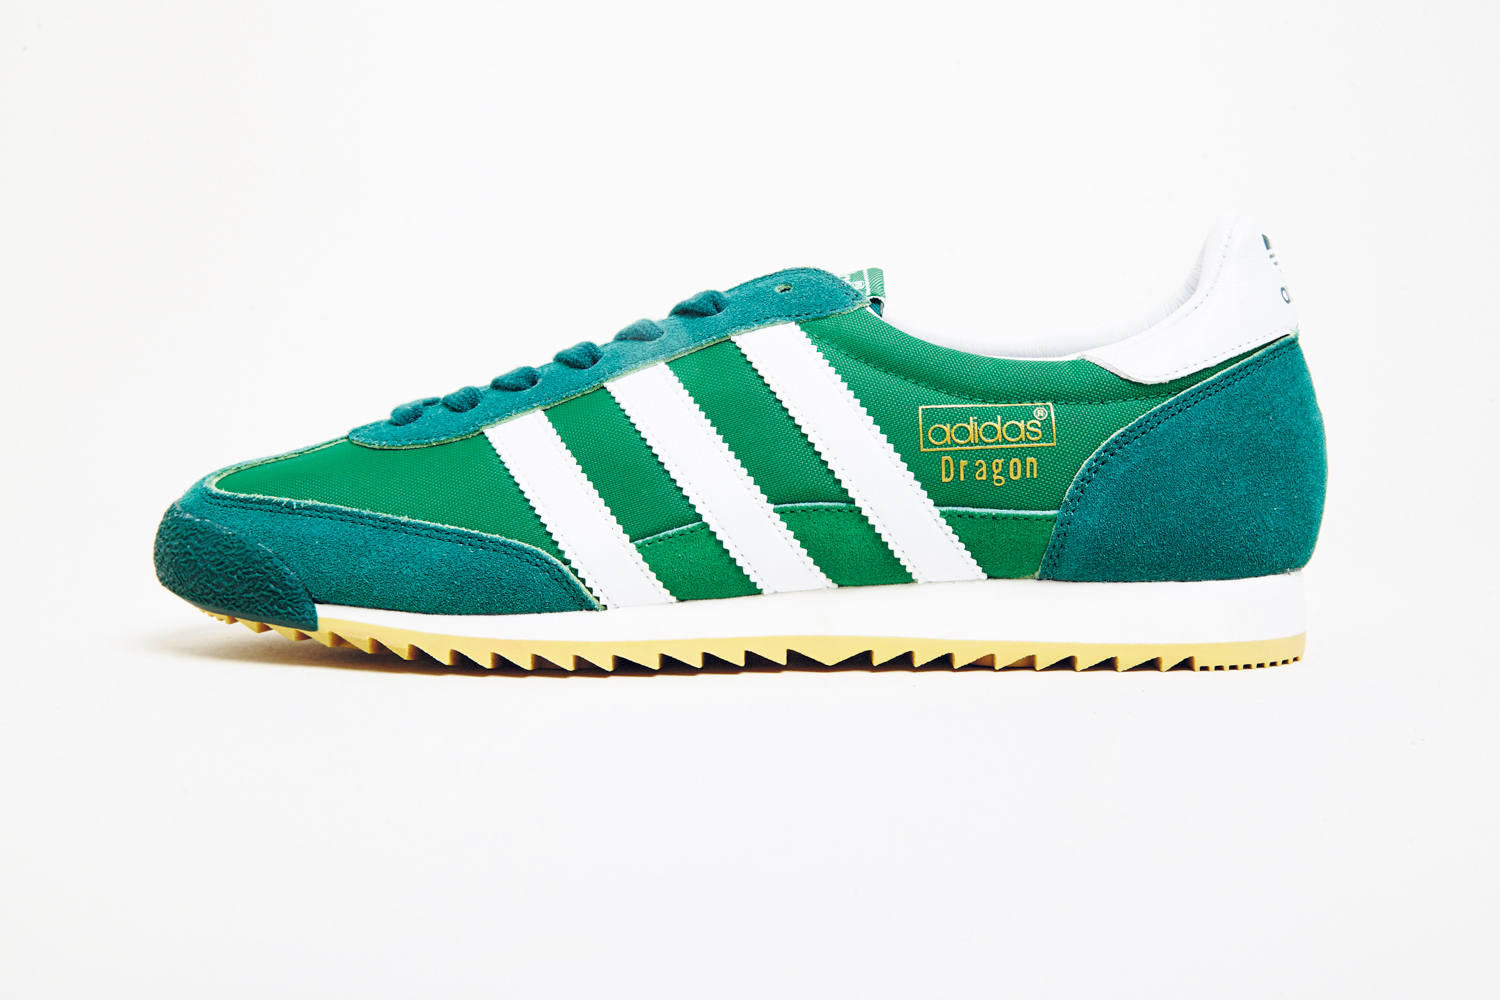 adidas-originals-archive-dragon-2